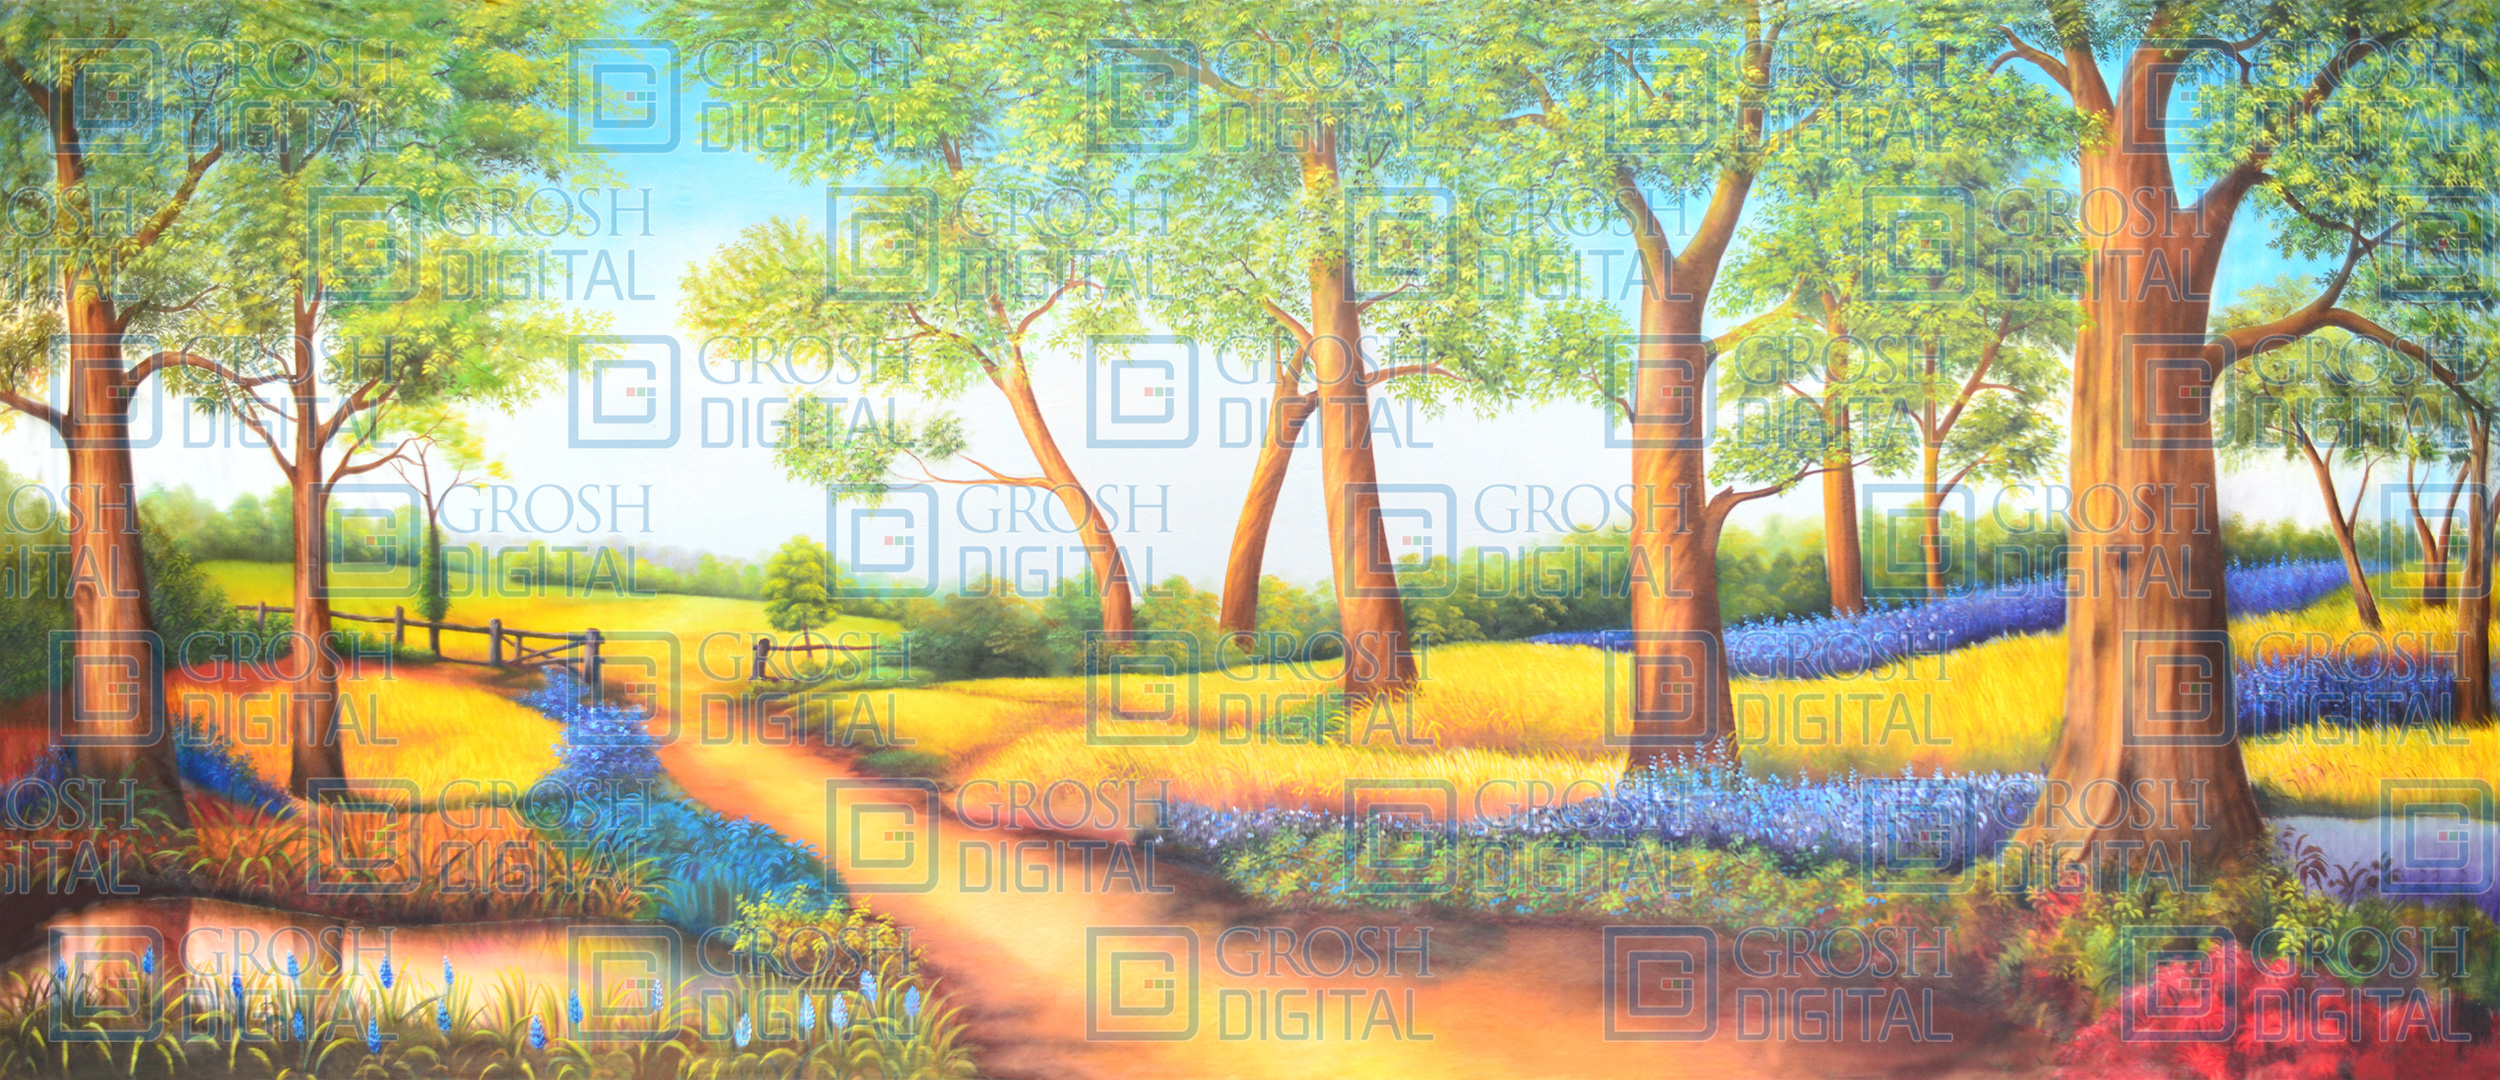 Country Landscape Projected Backdrop for Beauty and the Beast, Landscapes, Mary Poppins, Show, Sound of Music, Wizard of Oz